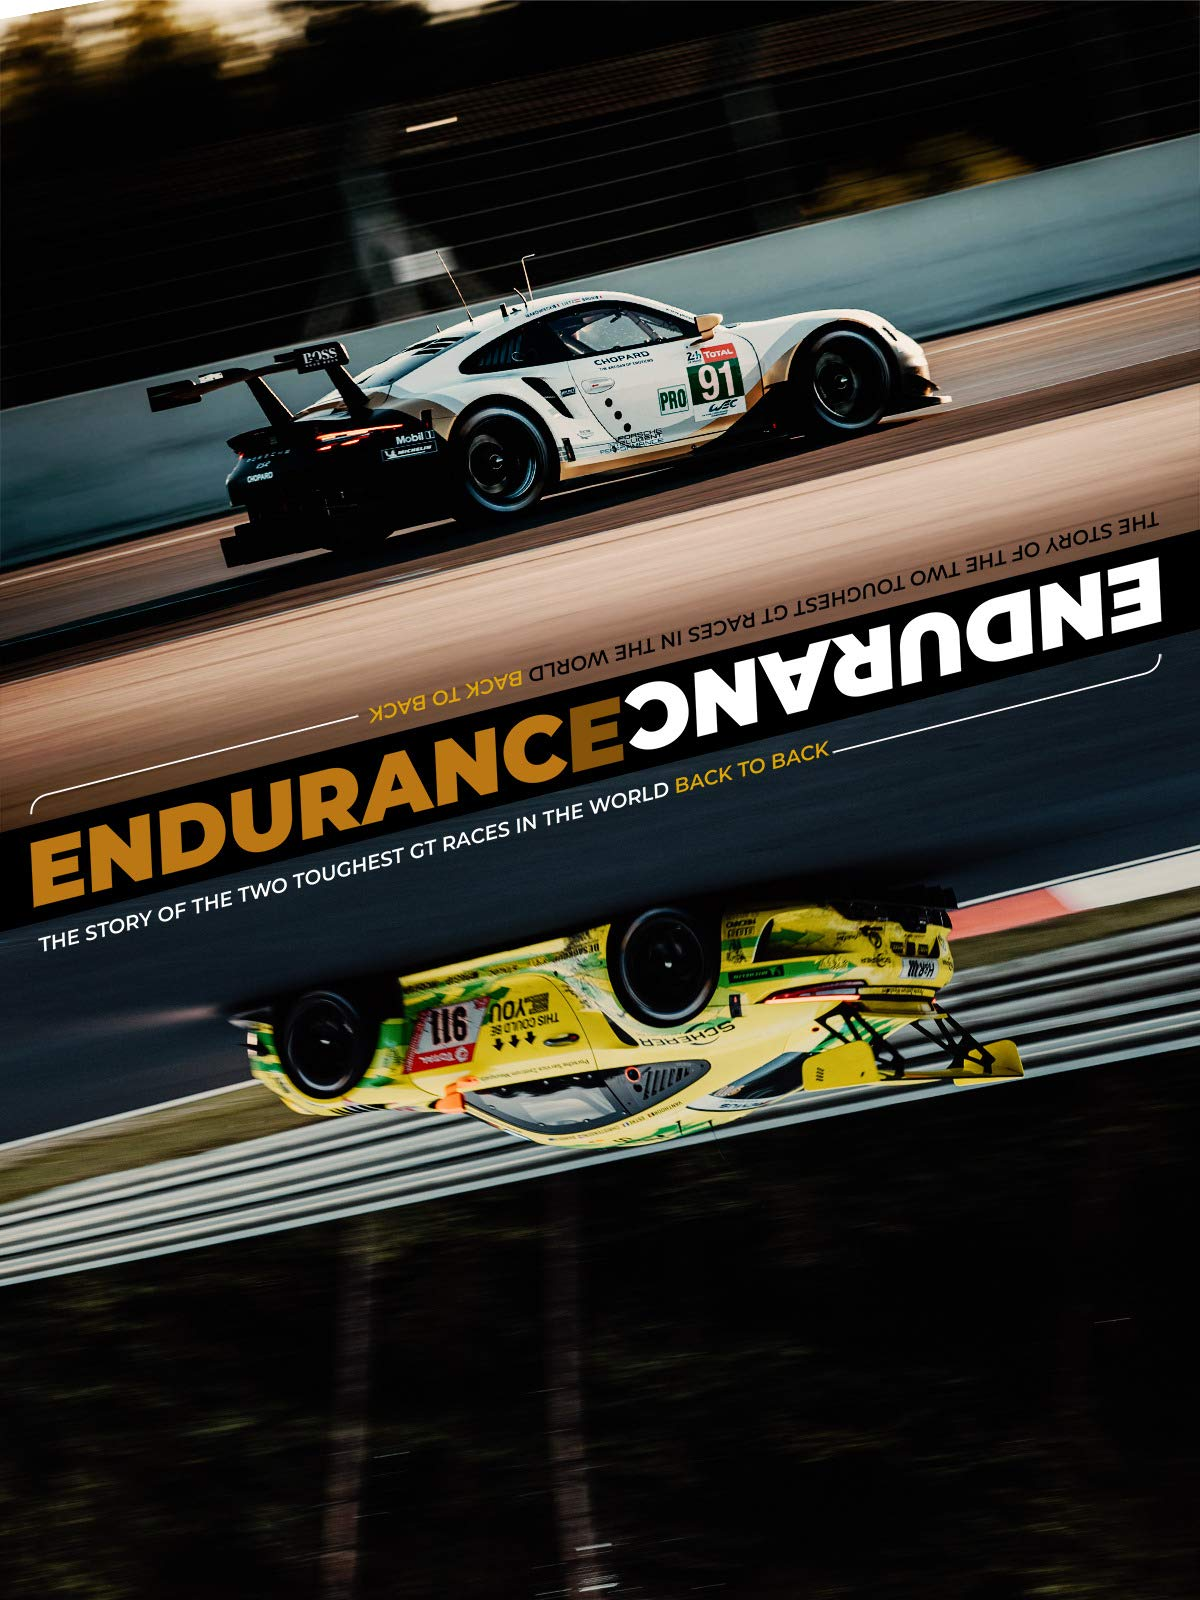 ENDURANCE. The Documentary about Porsche At The Two Toughest GT Races In The World.